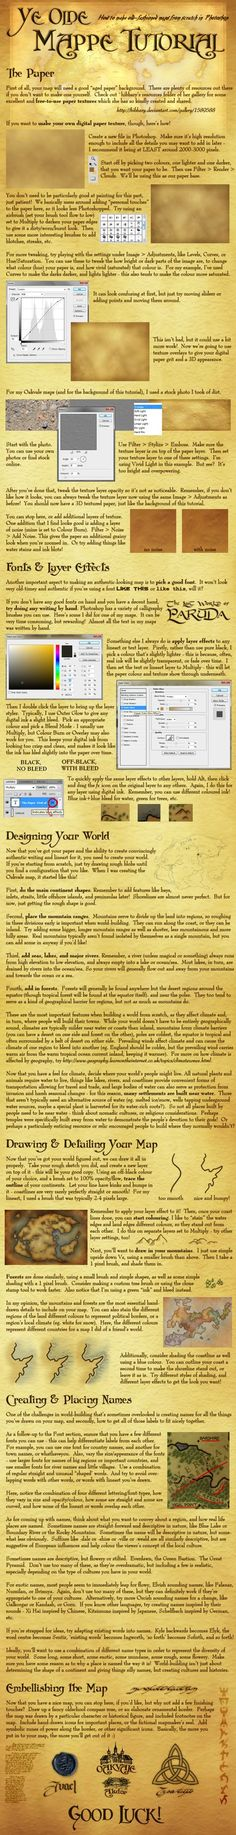 Ever wonder how to make an awesome map for a fantasy world? Here's a tutorial!